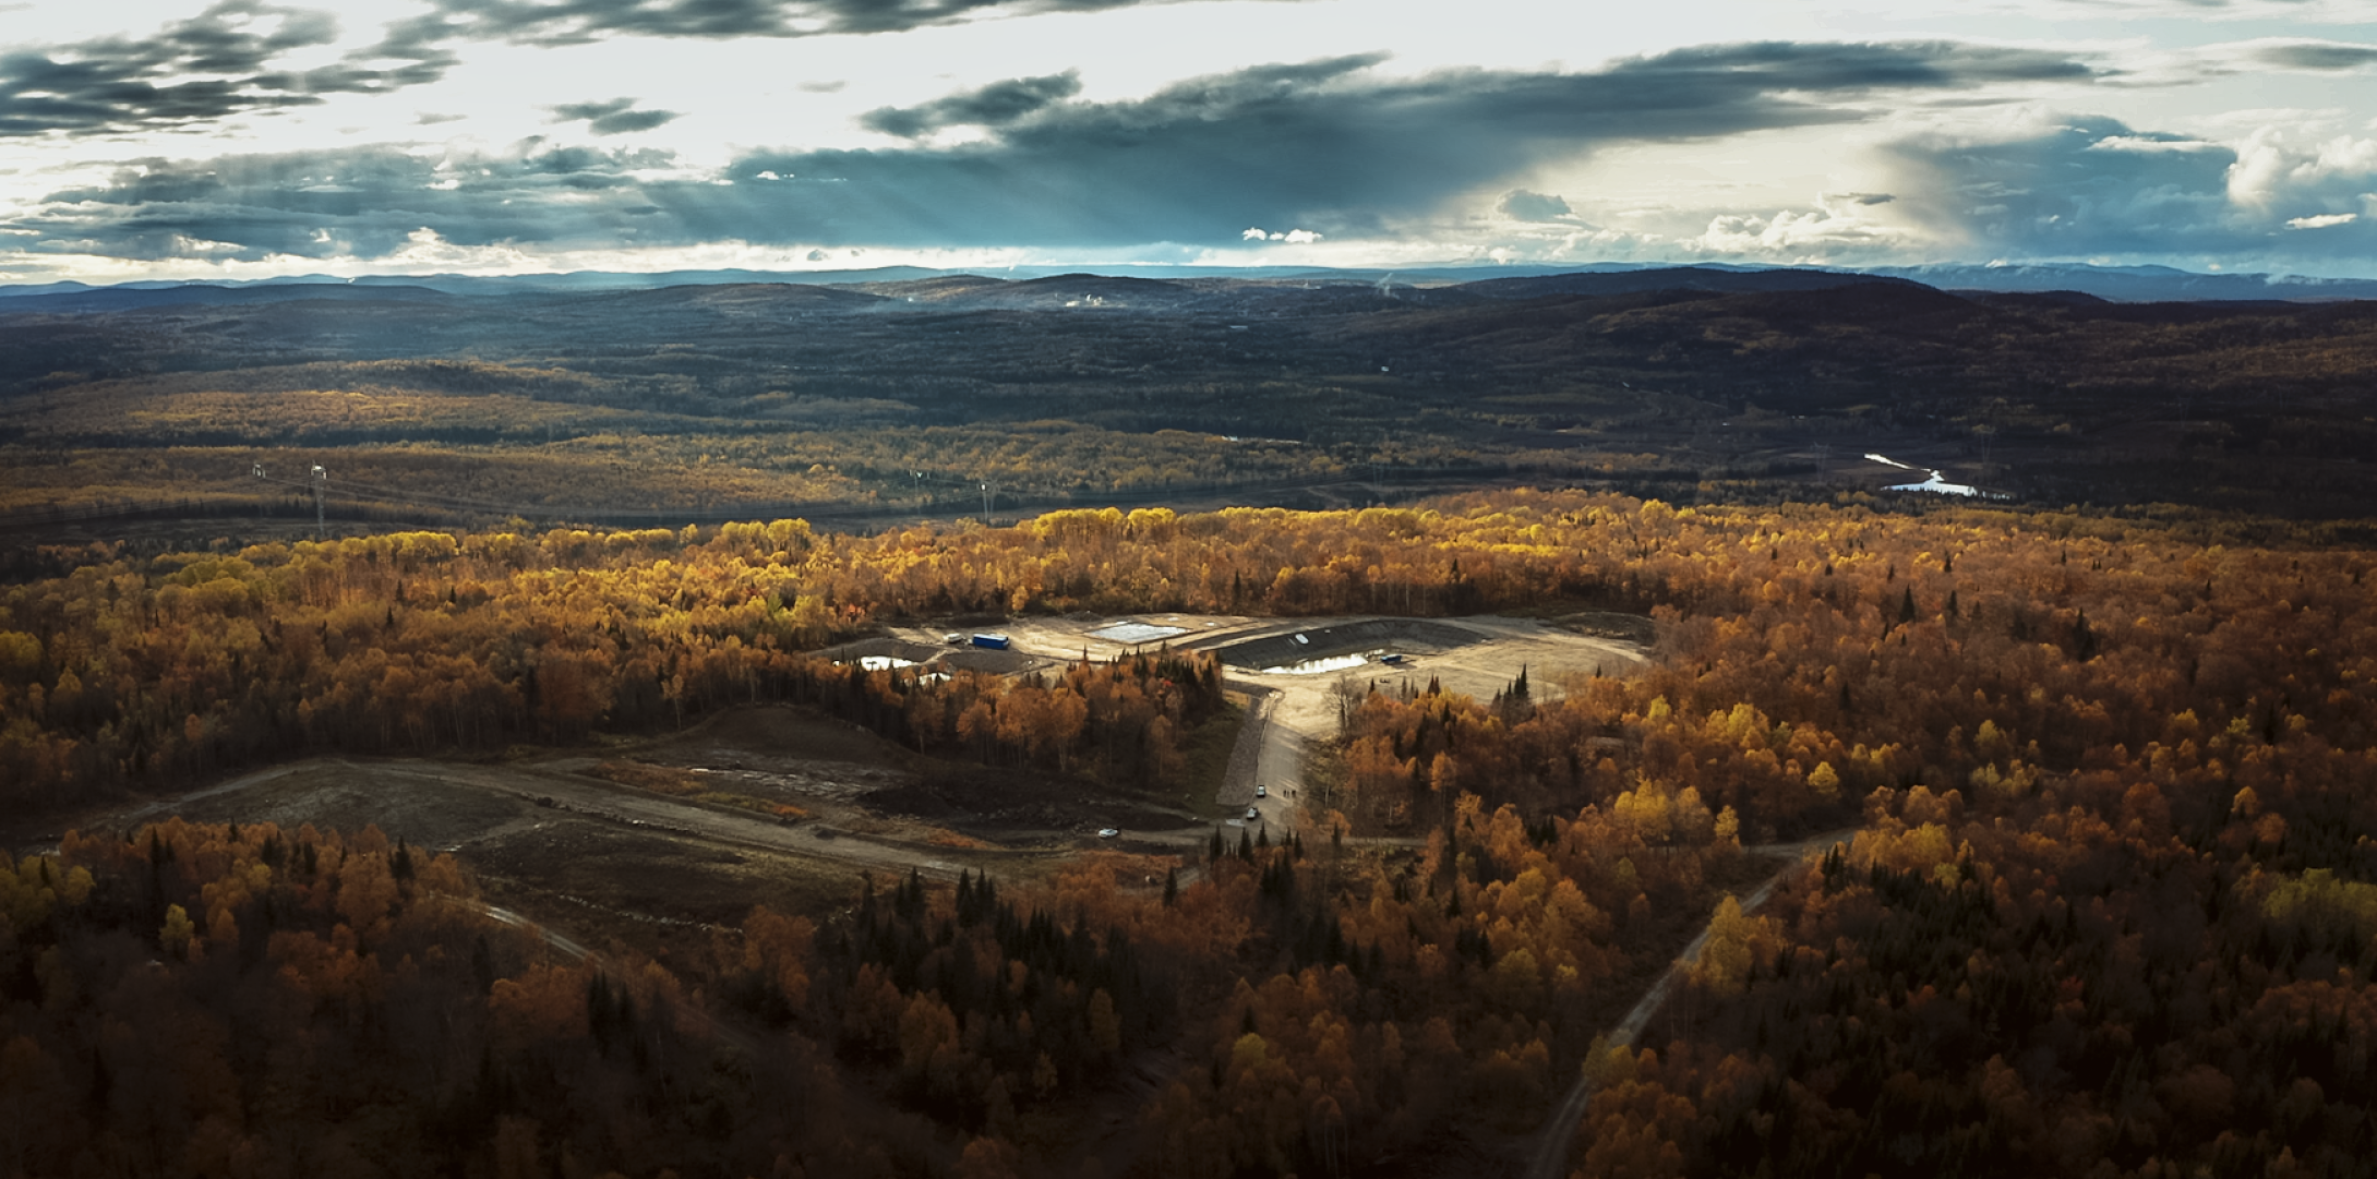 Far photo of a mine site surrounded by trees in the fall